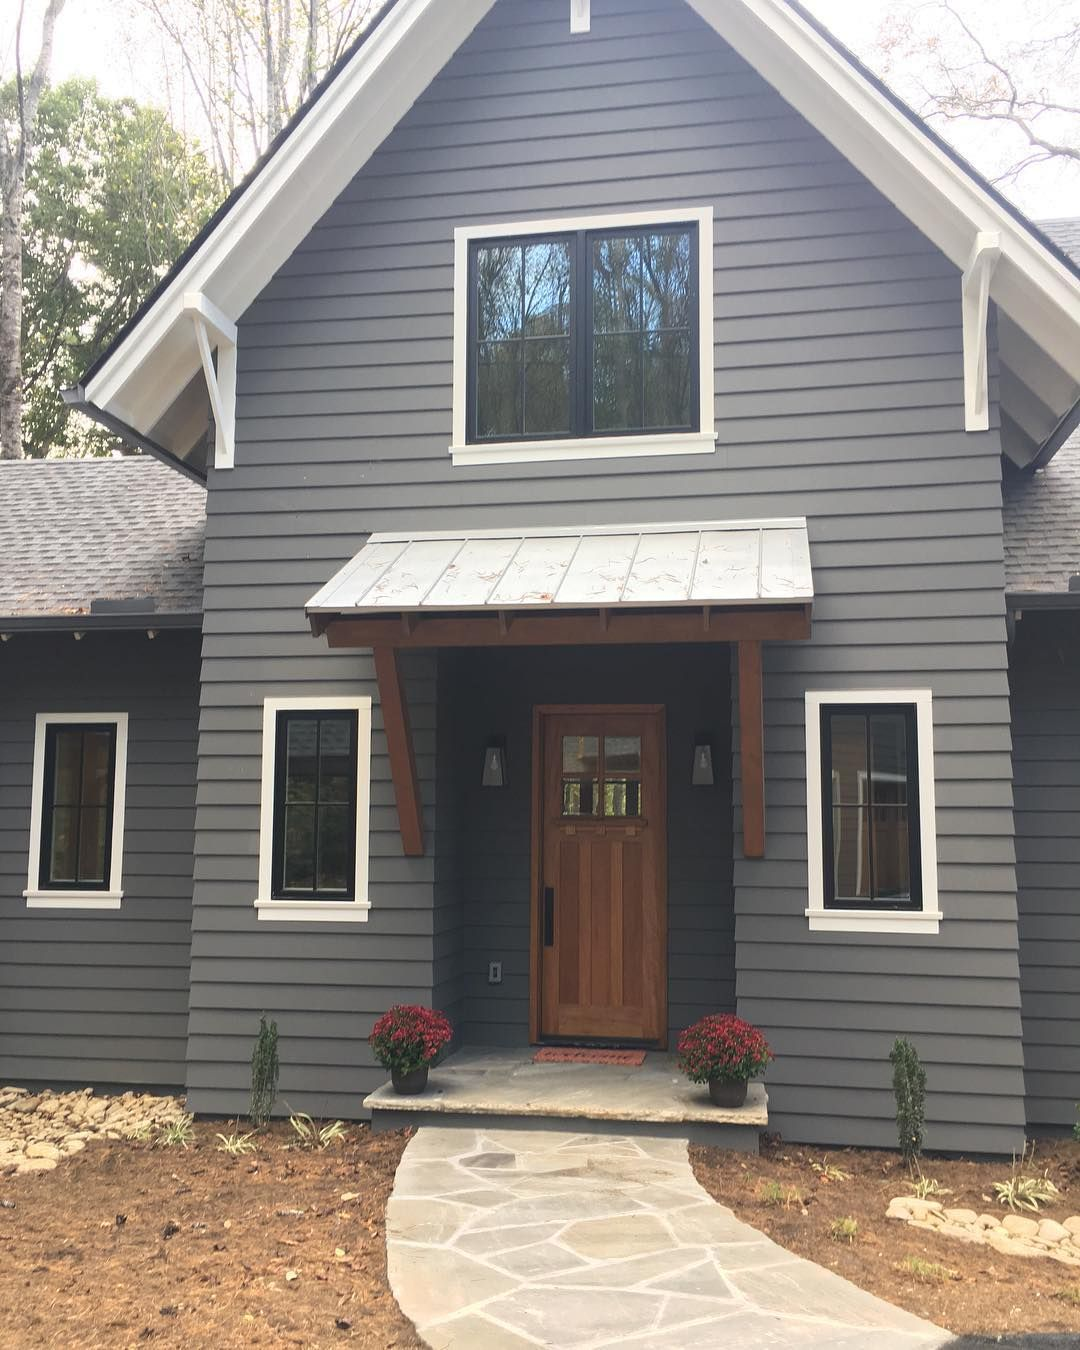 benjamin moore kendall charcoal house paint exterior on benjamin moore paint exterior colors id=37405